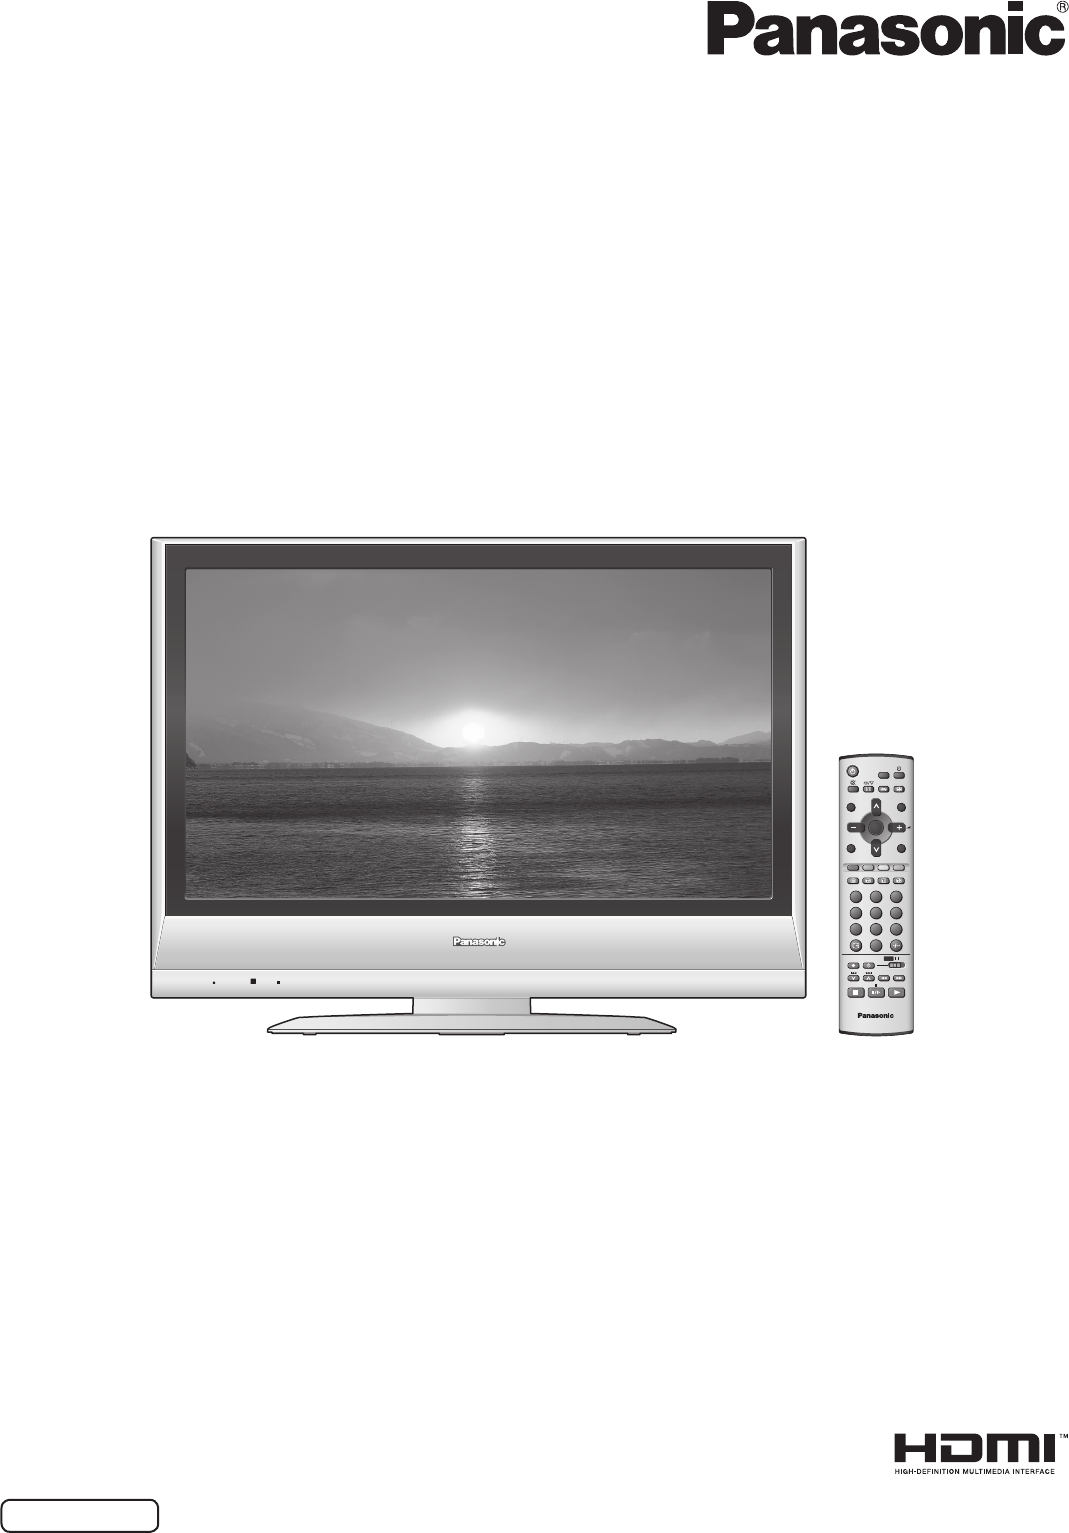 "panasonic flat panel television tx 23lx60a user guide rh tv manualsonline com Panasonic 50"" Plasma Panasonic HDTV 1080I Troubleshooting"